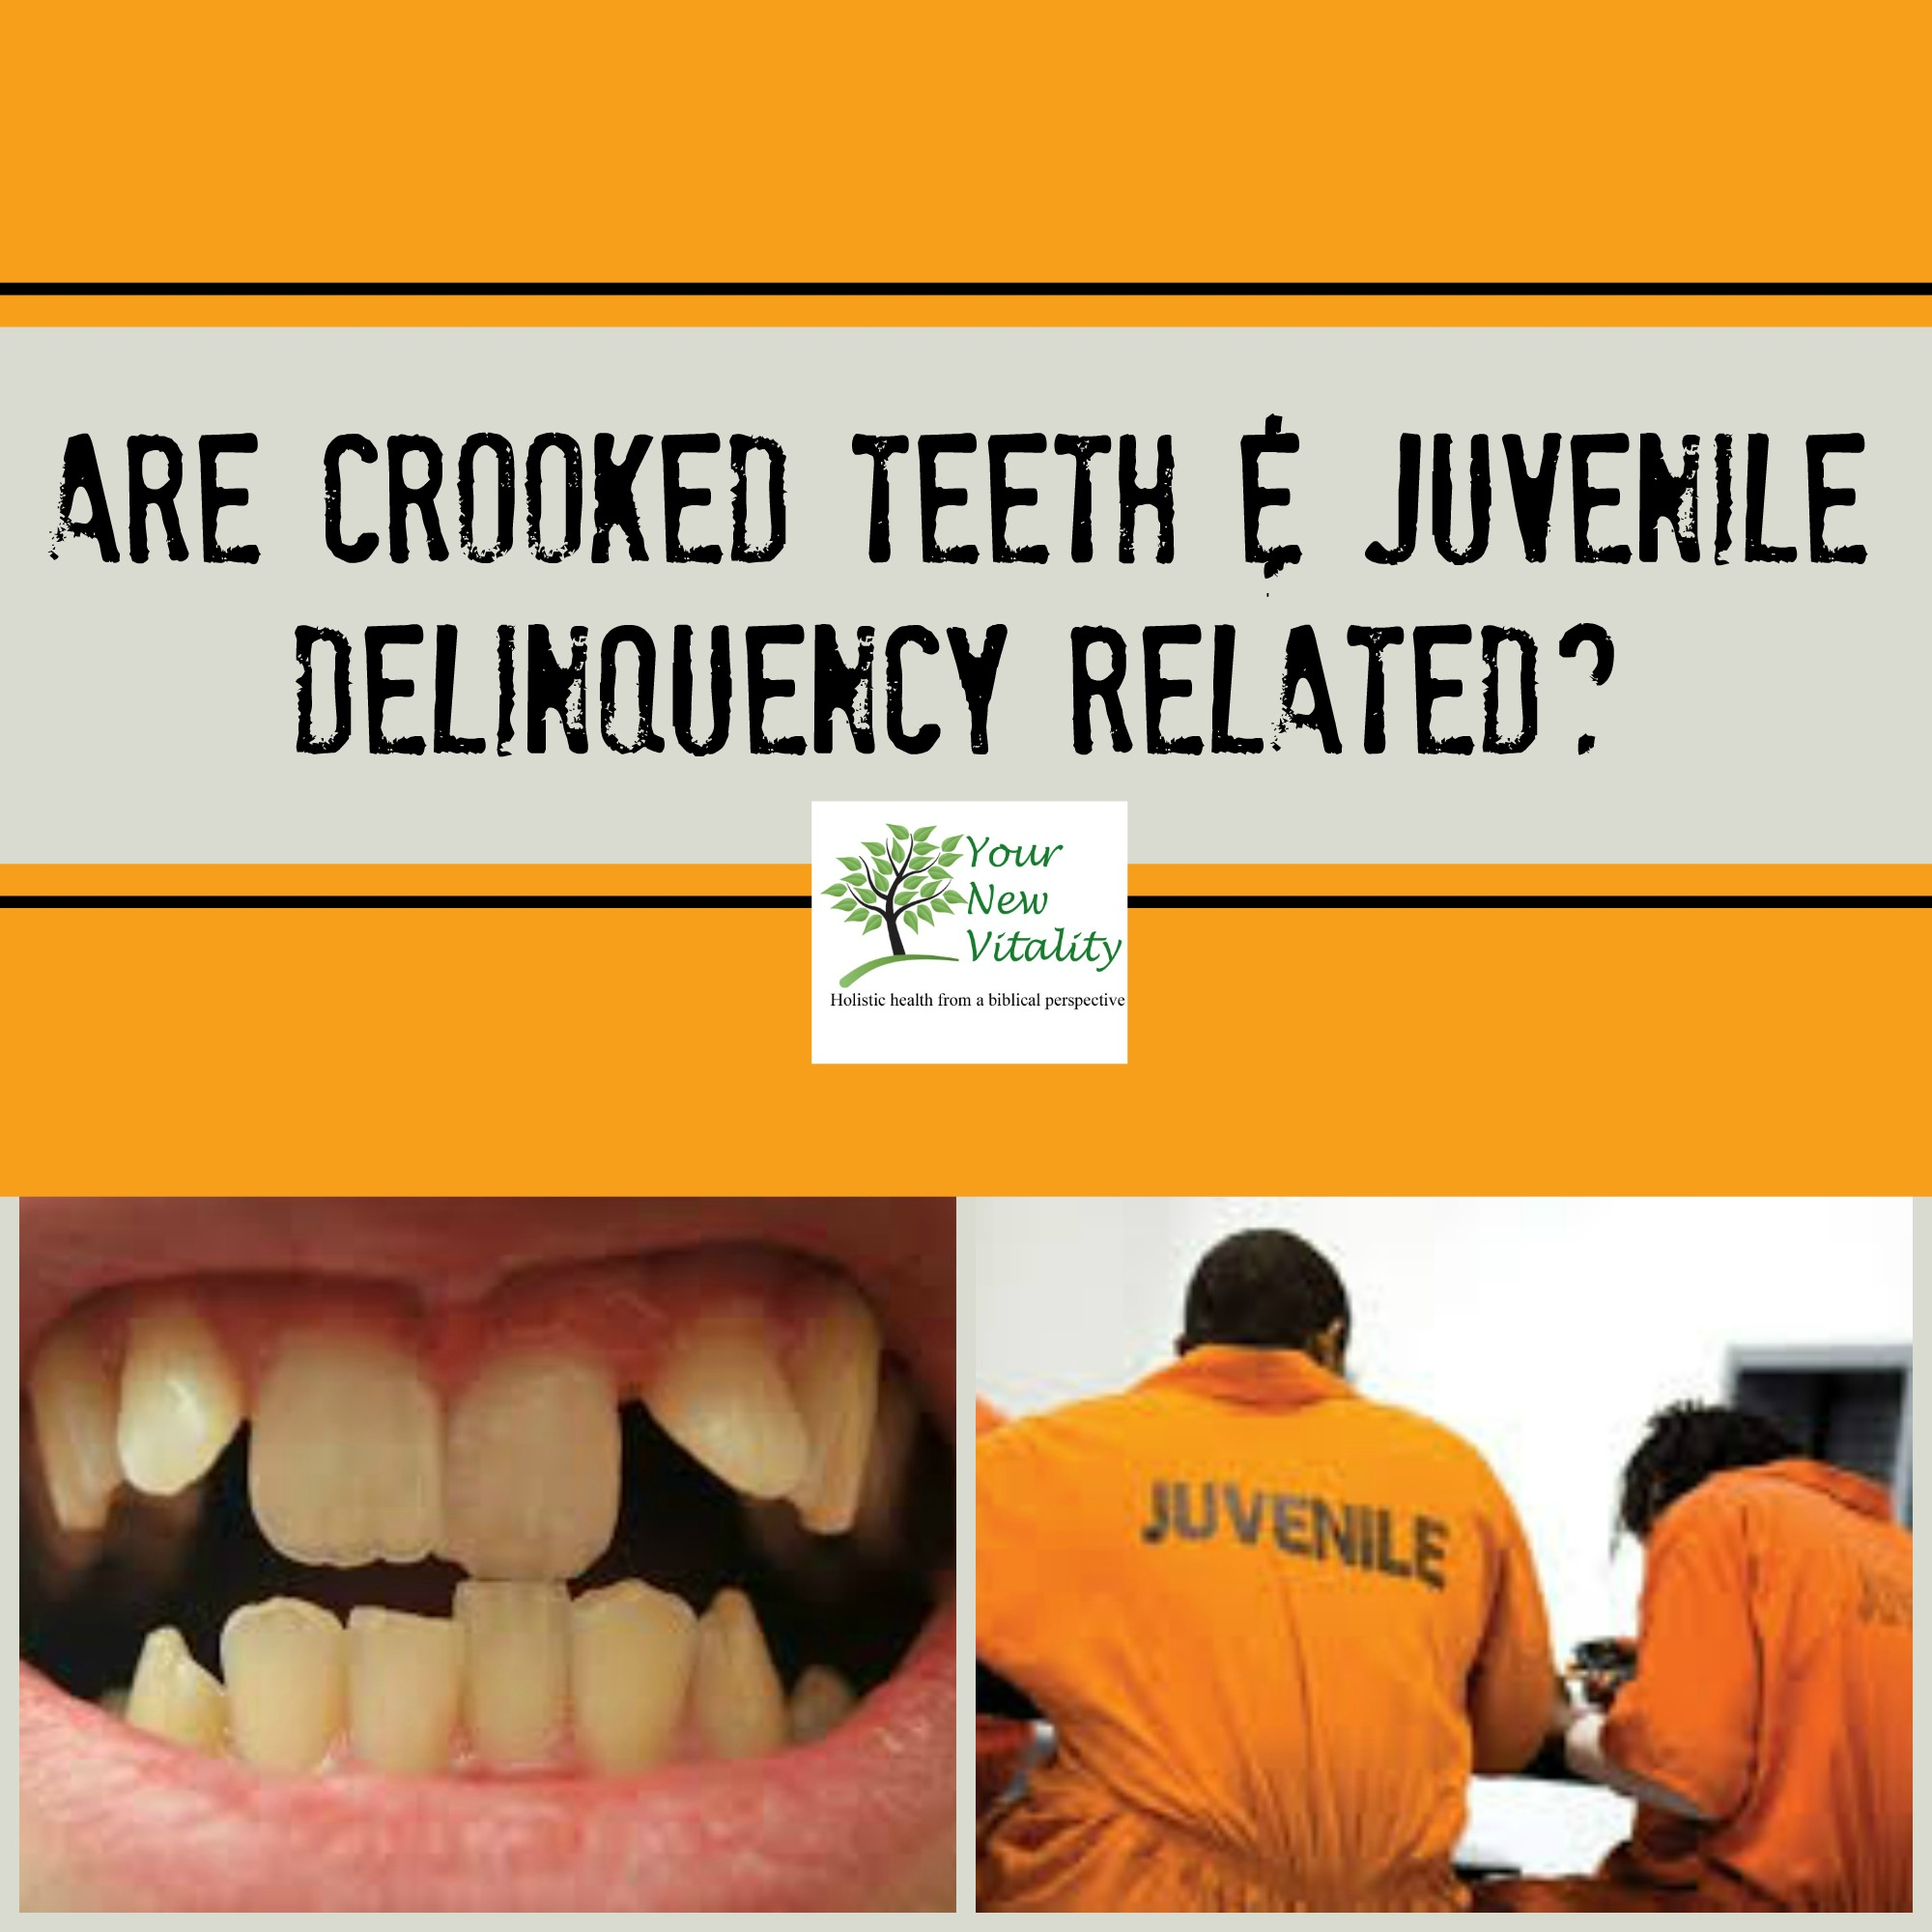 crooked teeth juvenile delinquency1